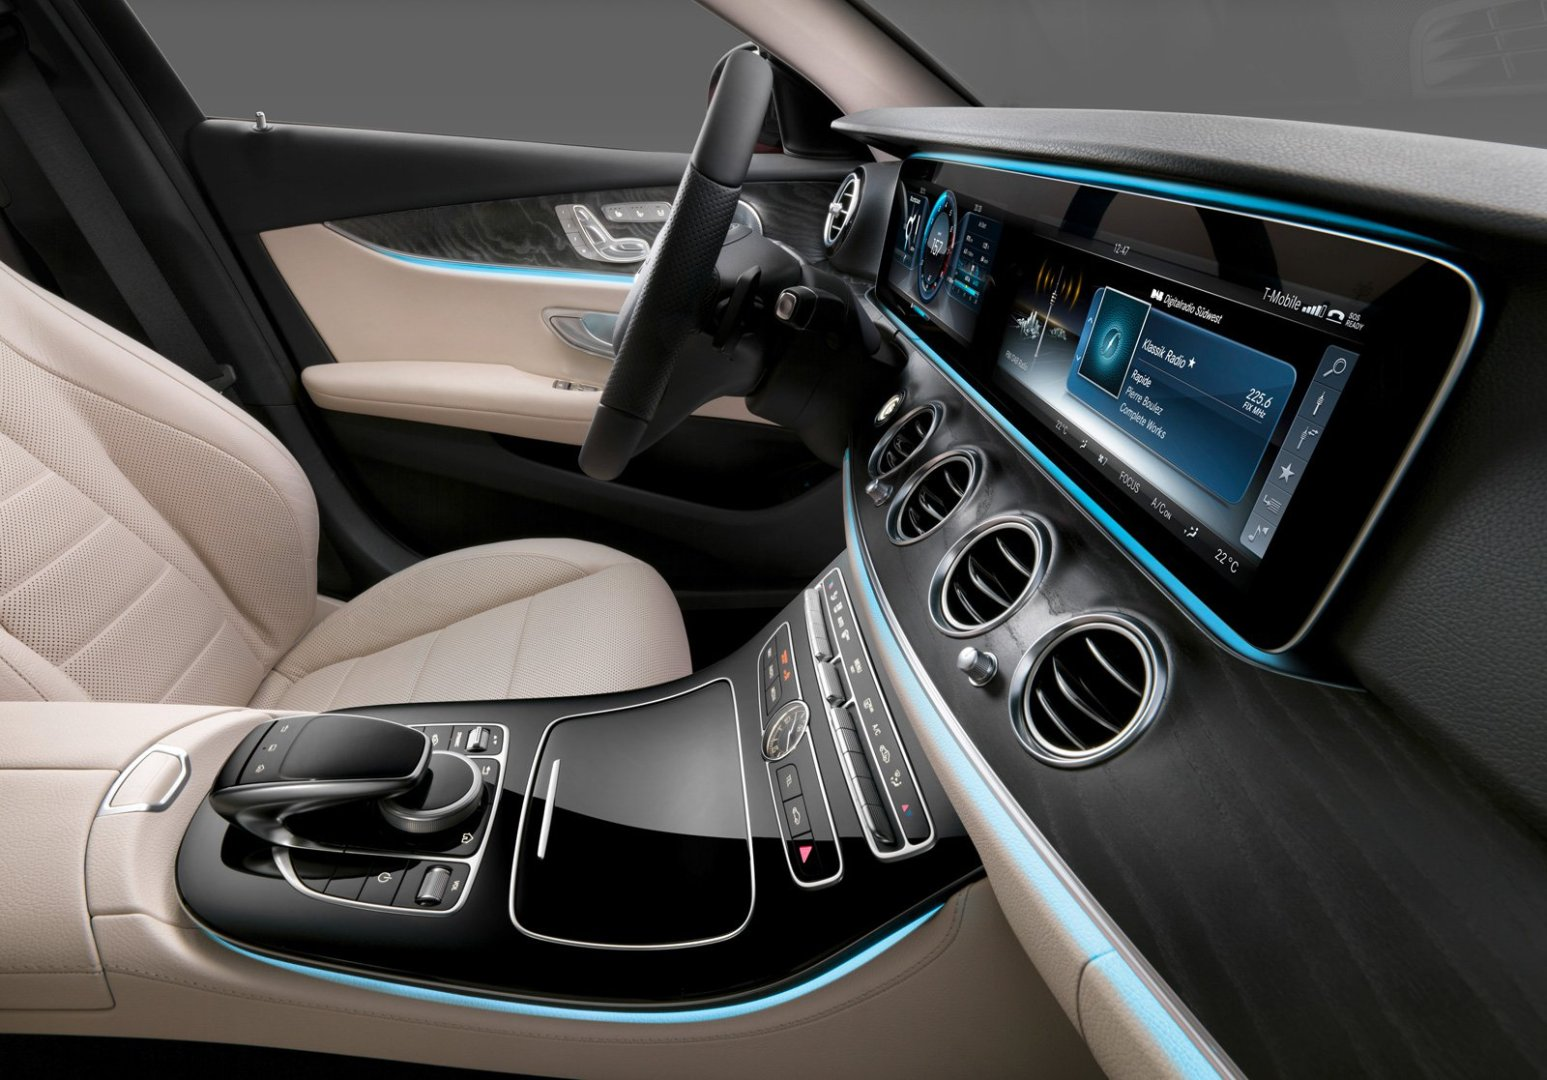 The 2017 E-Class interior looks amazing - finish quality should be as equal as the one in S-Class, which is a welcoming improvement over the past couple of generations.